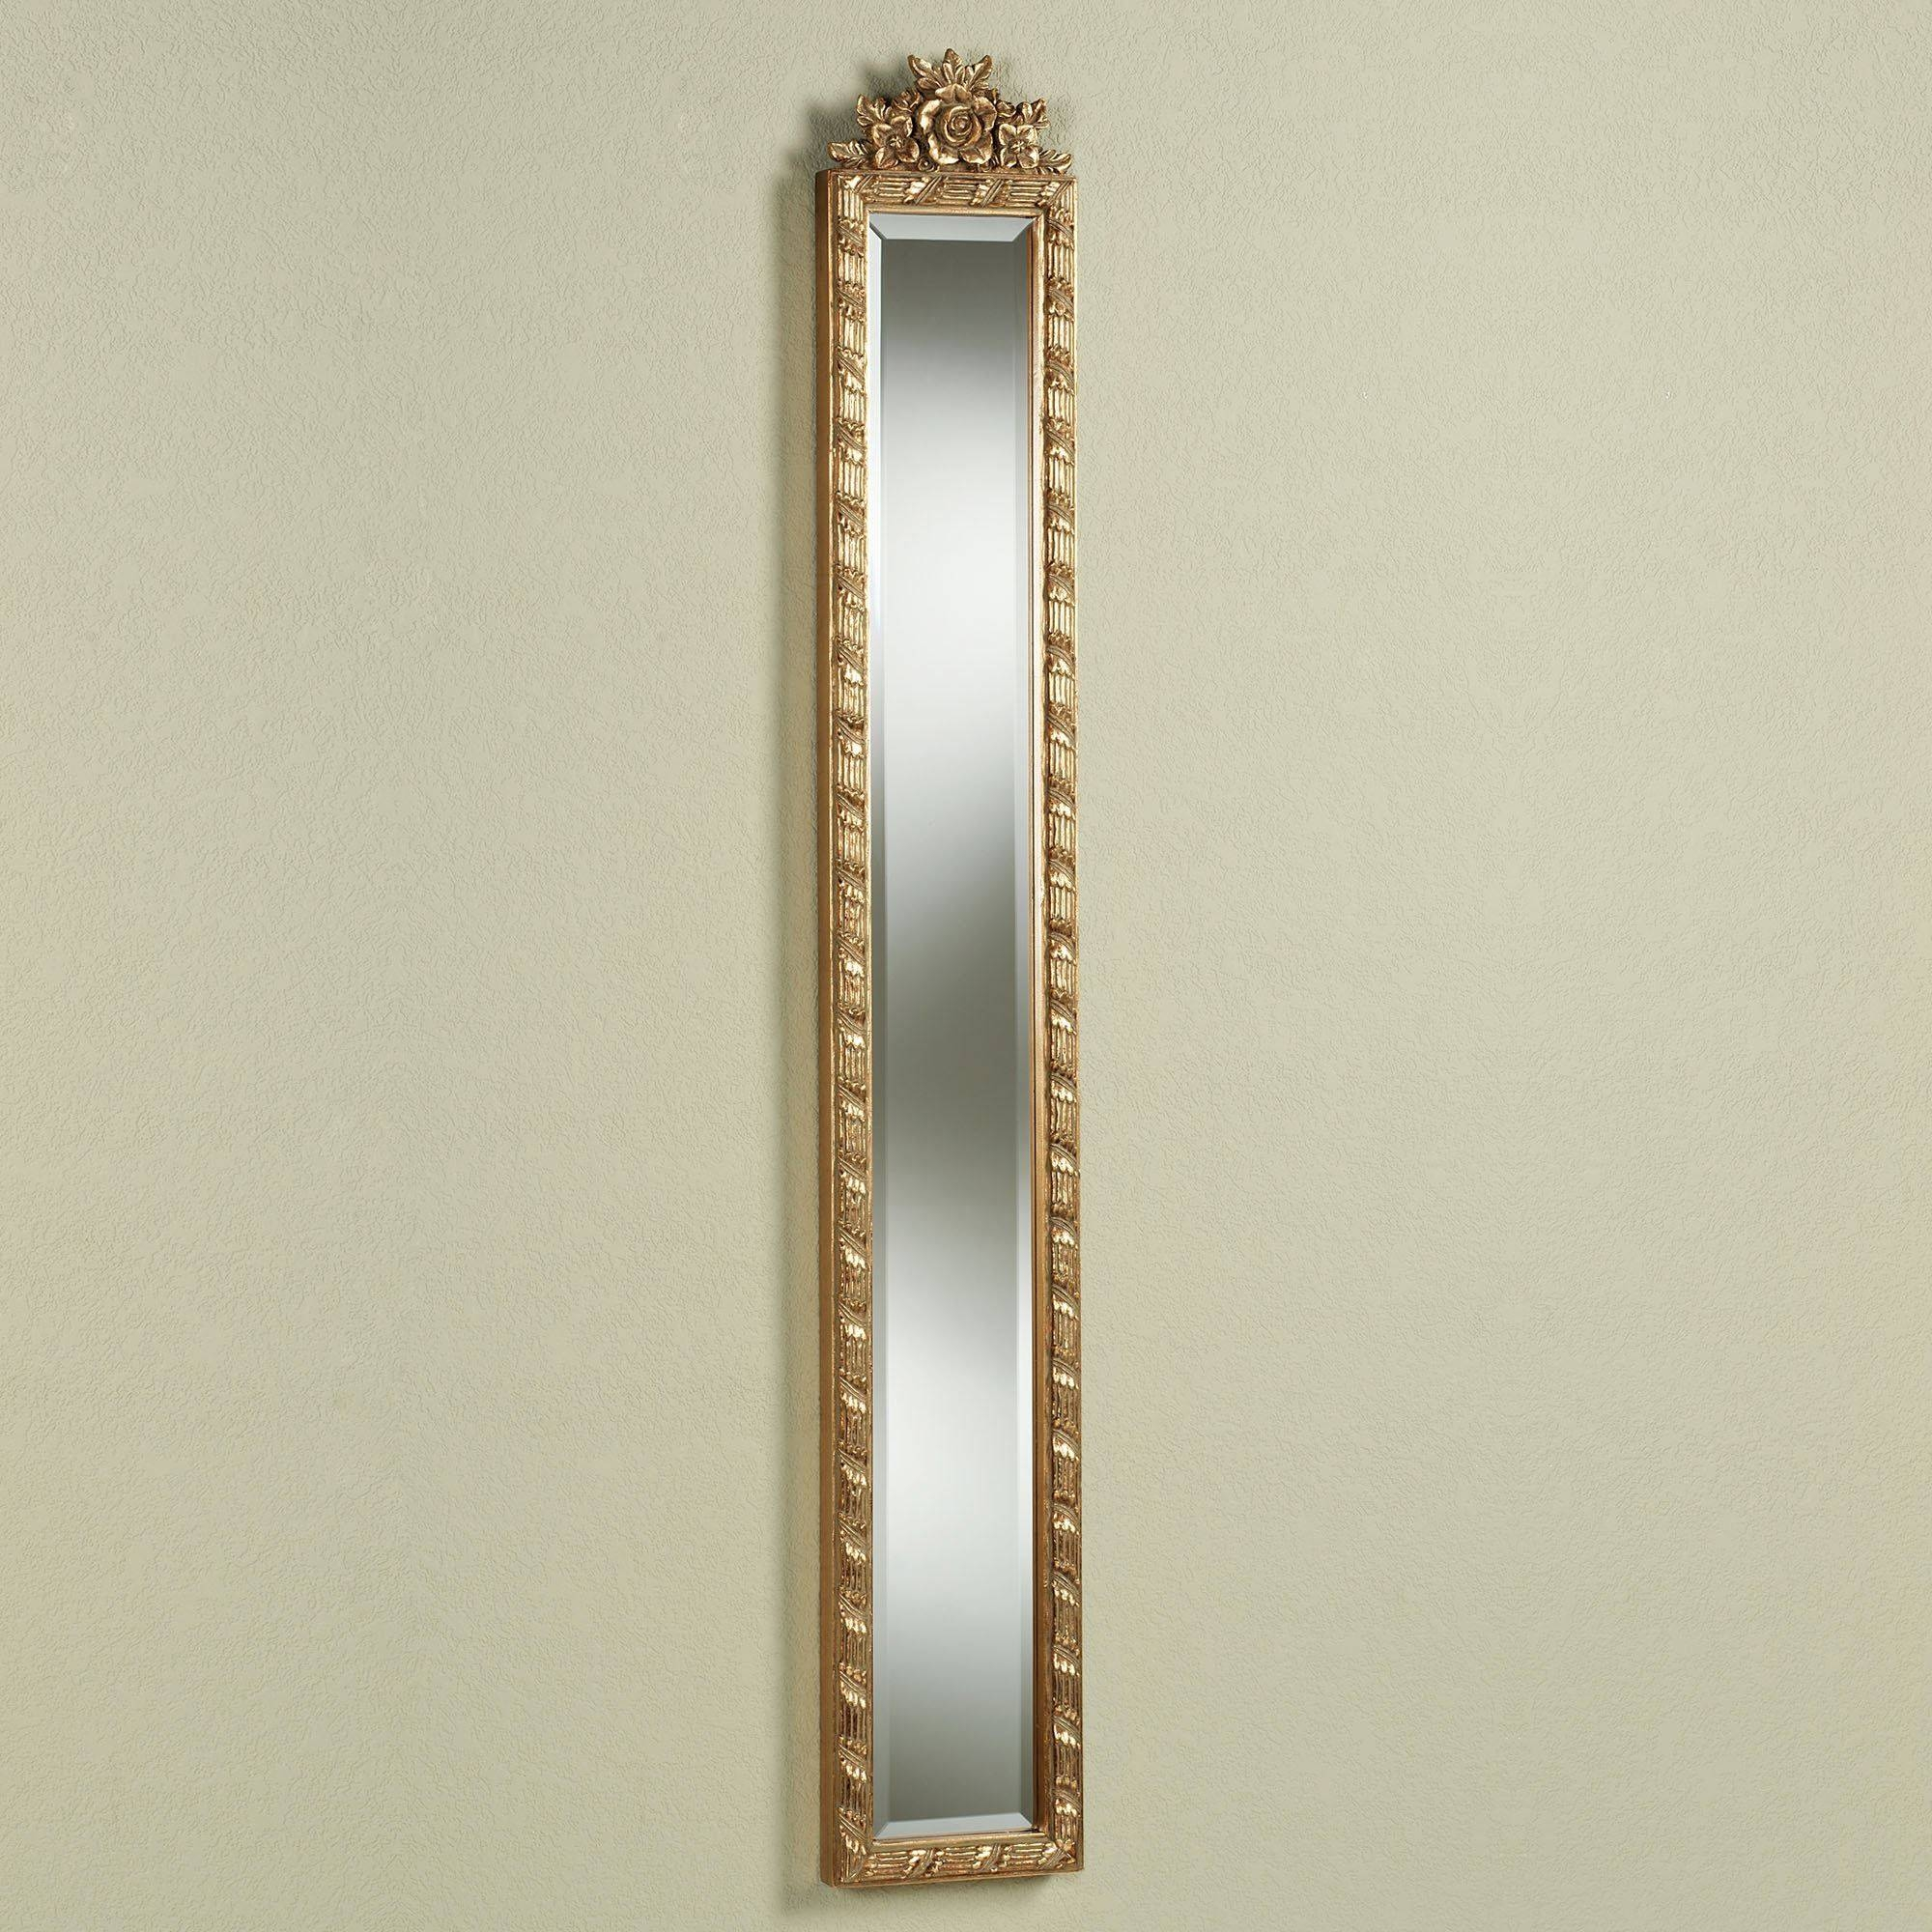 Giuliana Antique Gold Floral Wall Mirror Panel regarding Vintage Wall Mirrors (Image 16 of 25)